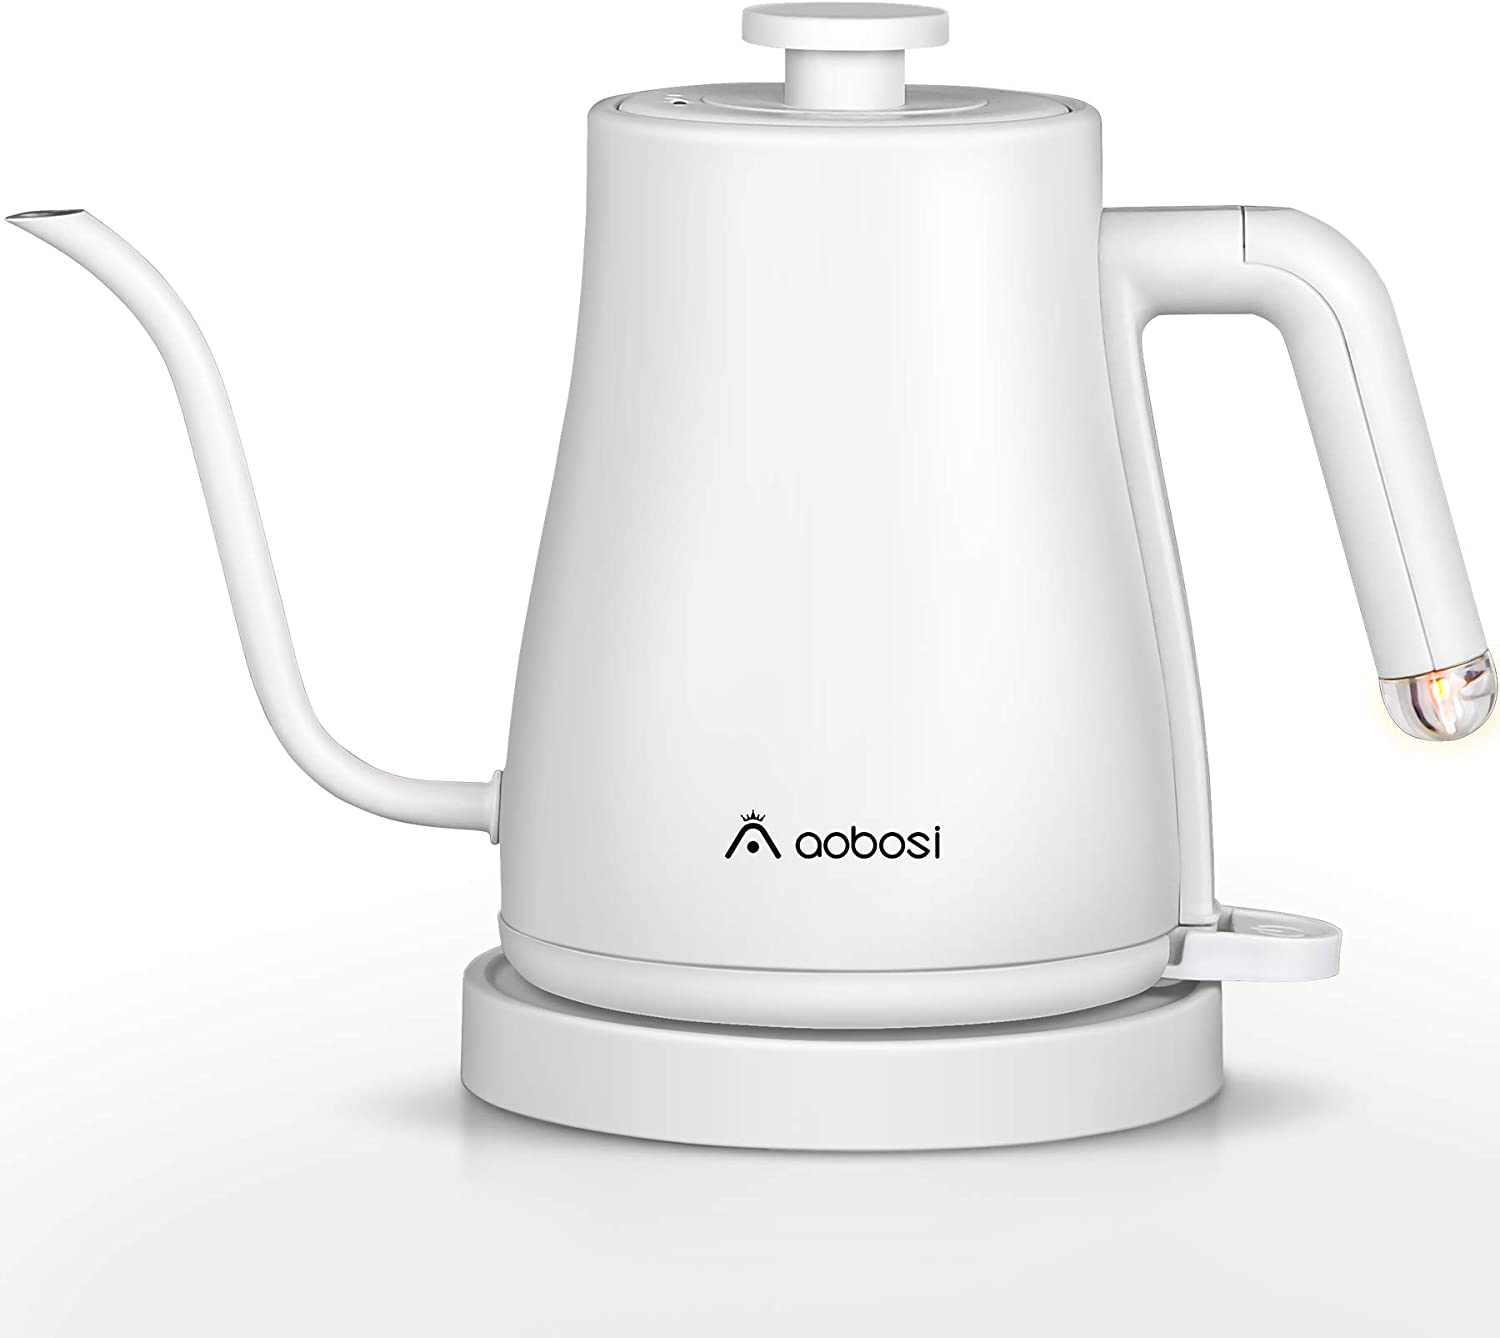 Aobosi Electric Kettle Gooseneck Kettle, 3-IN-1 Pour Over Coffee Kettle with Stainless Steel Inner Lid & Bottom, Boil-Dry Protection, 1000W Fast Heating, Auto-Shut Off, 1L Tea Kettle, Matte White